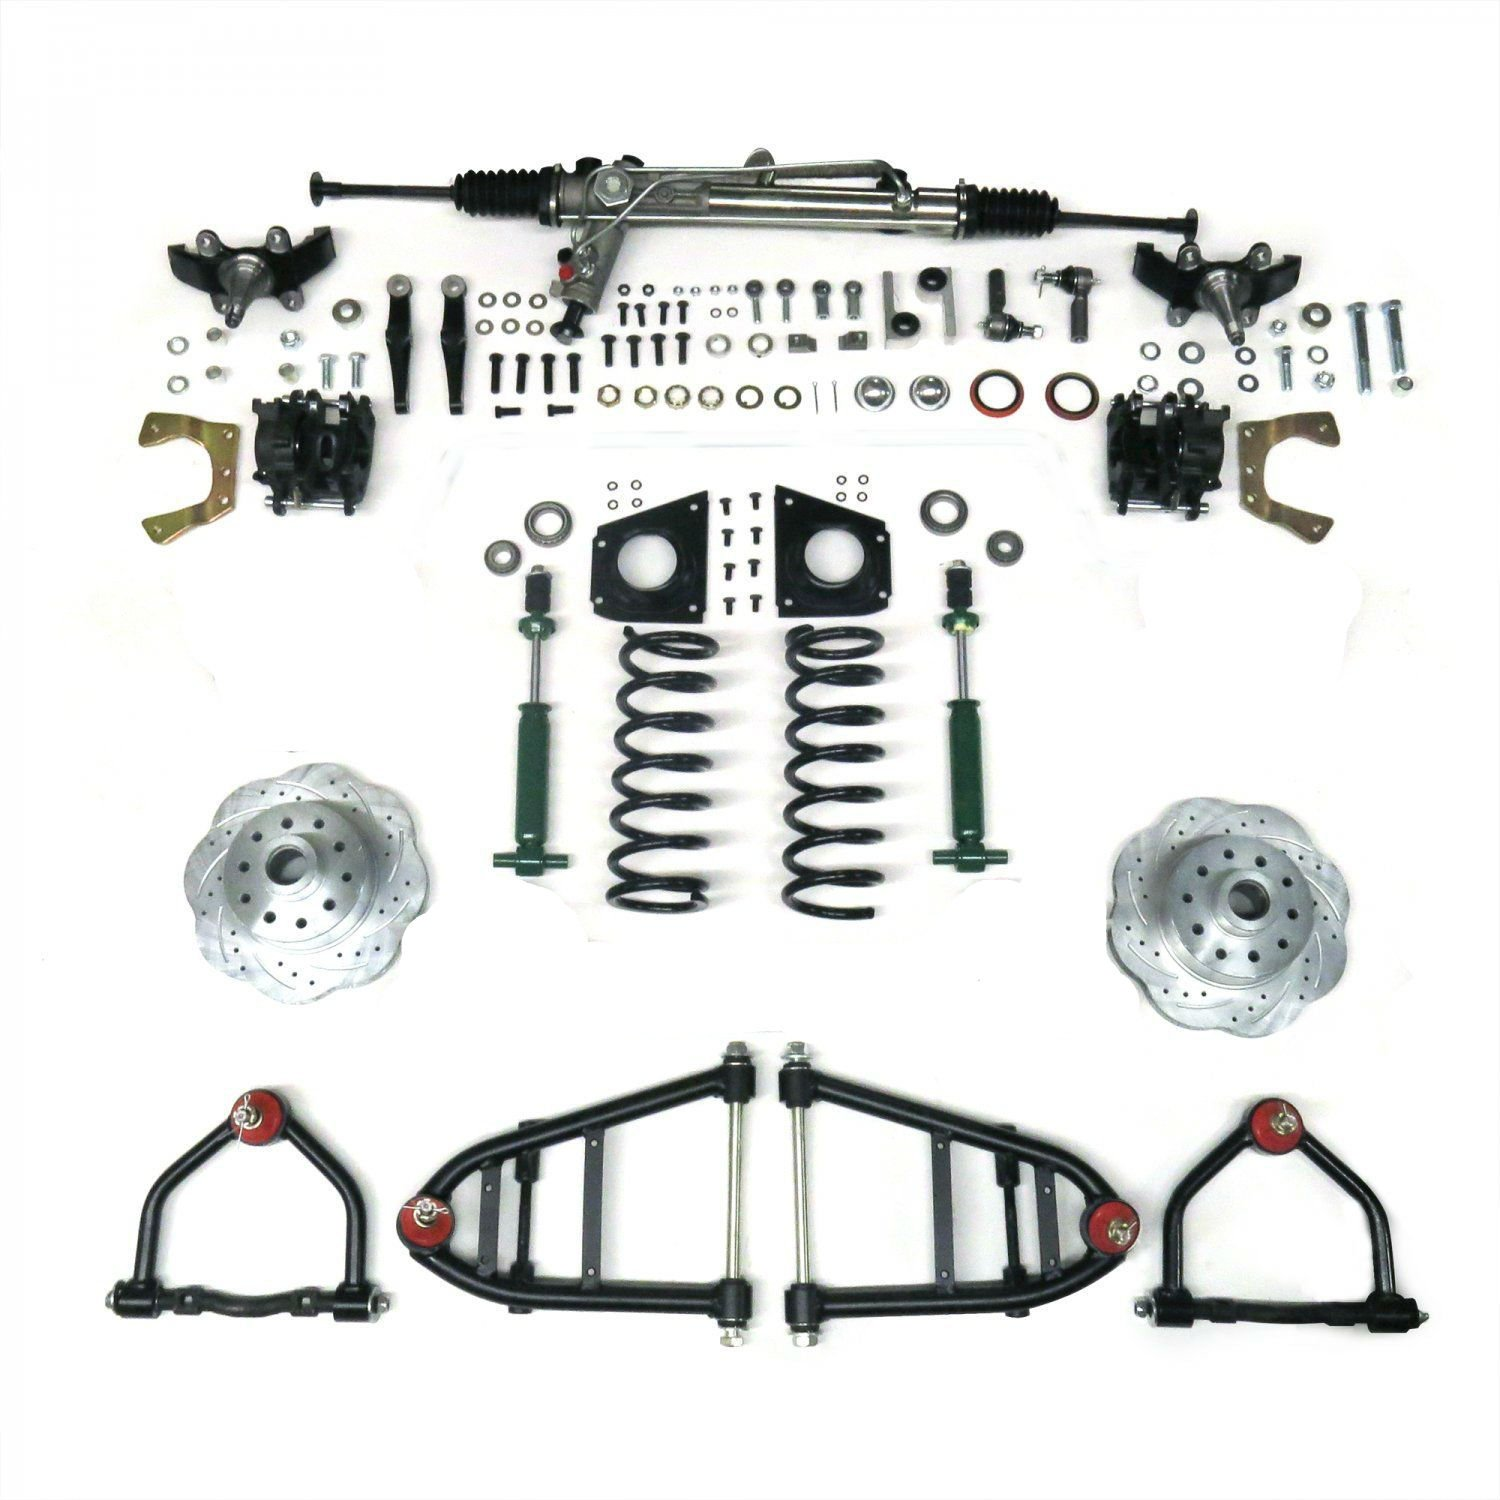 Mustang Ii Ifs Kit With Power Steering For 55 57 Chevy Bel